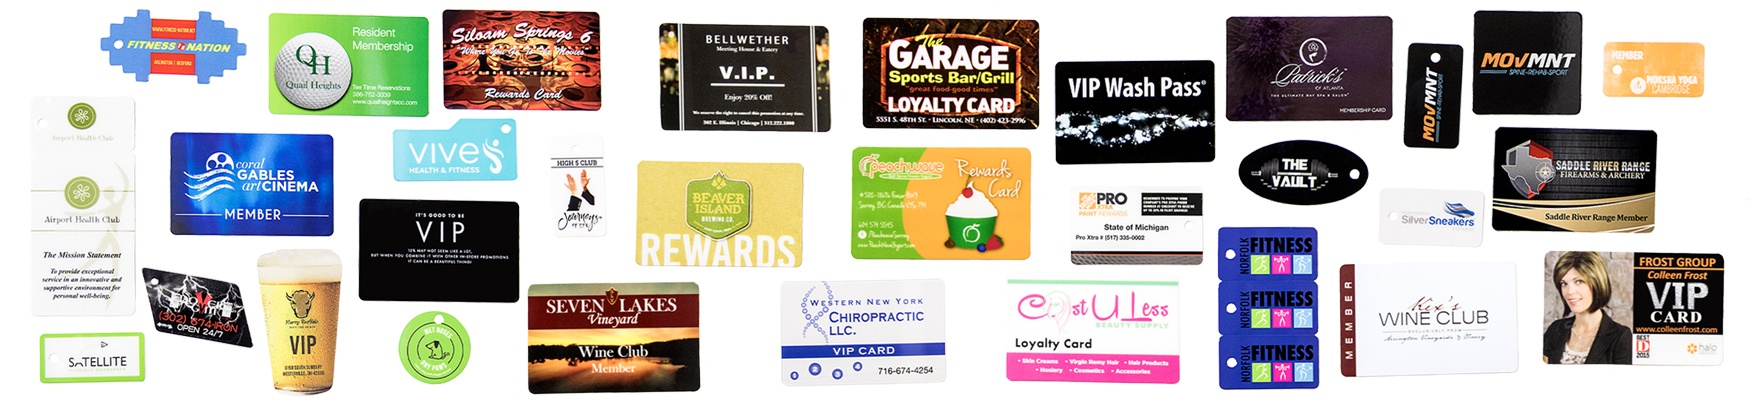 Membership-VIP-Rewards-Banner-1750x400.jpg